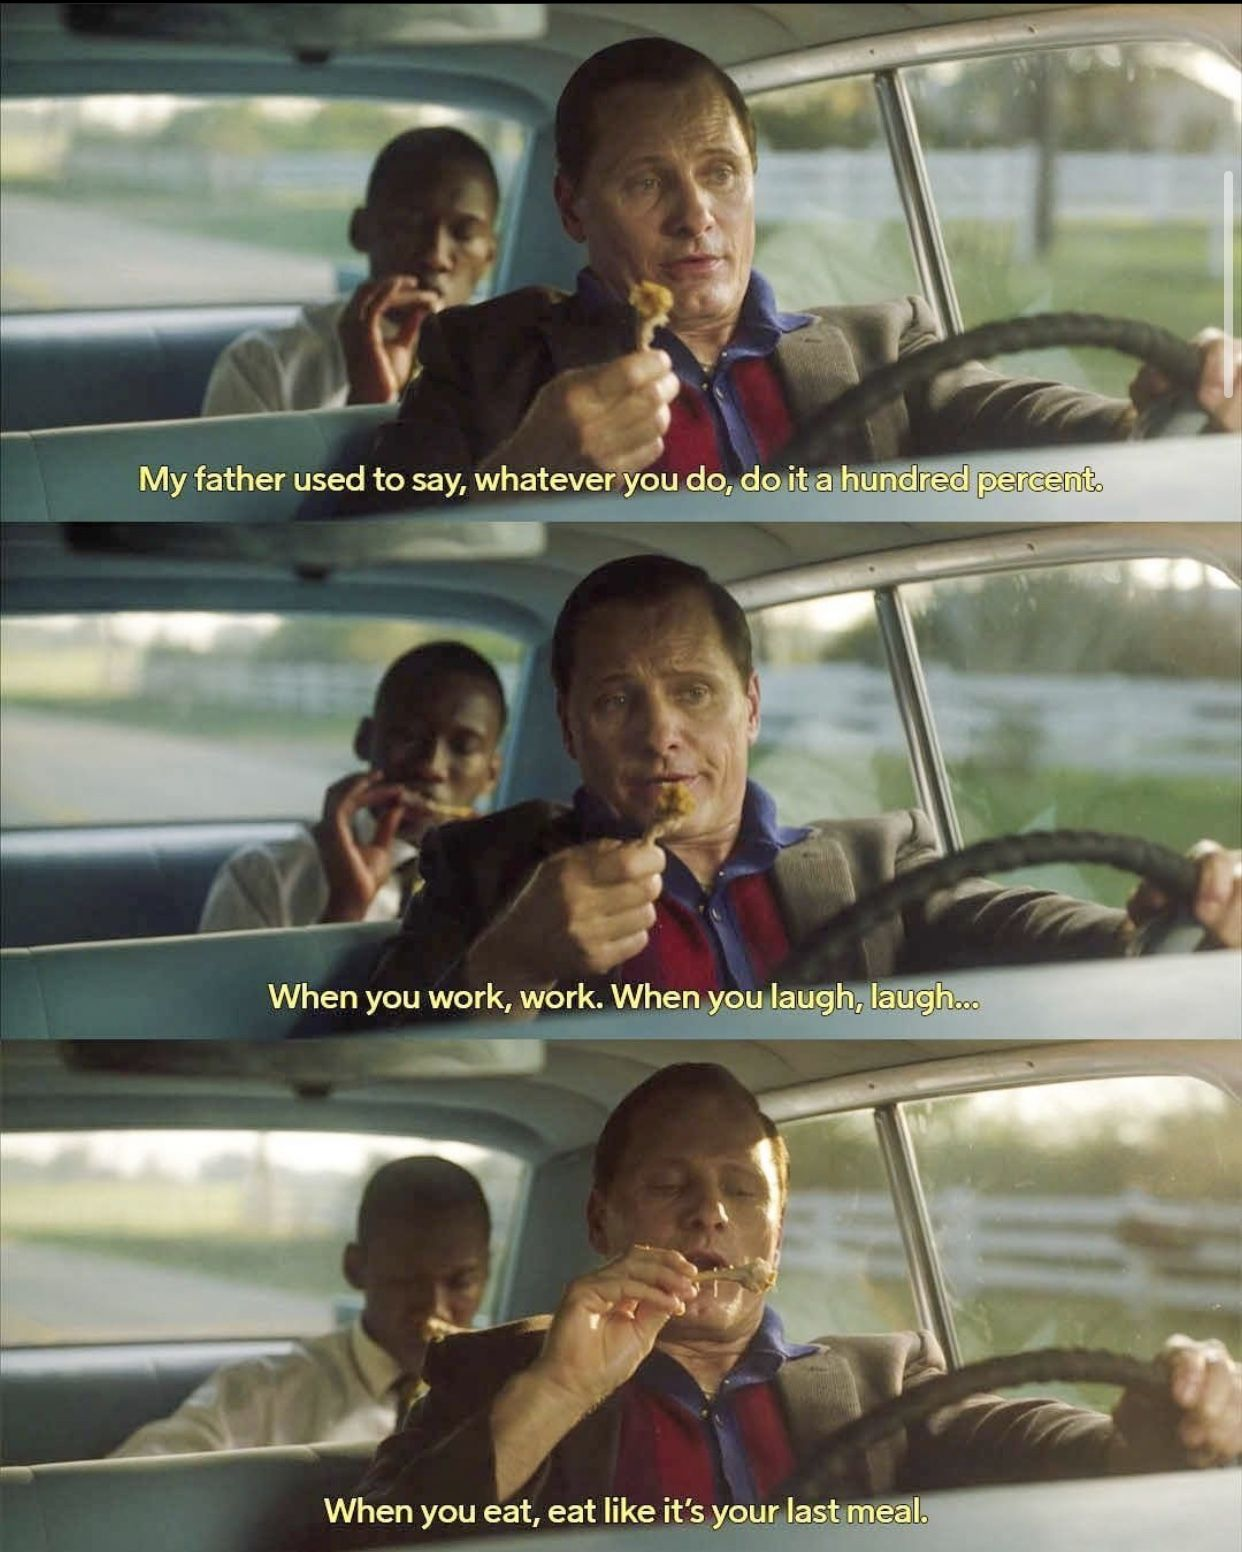 From The Movie Green Book Netflixseries Viaplay Greenbook Quoteoftheday Livelovelaugh Pinterest Mindset Livelifetothefullest En 2020 Cine Peliculas Pelis